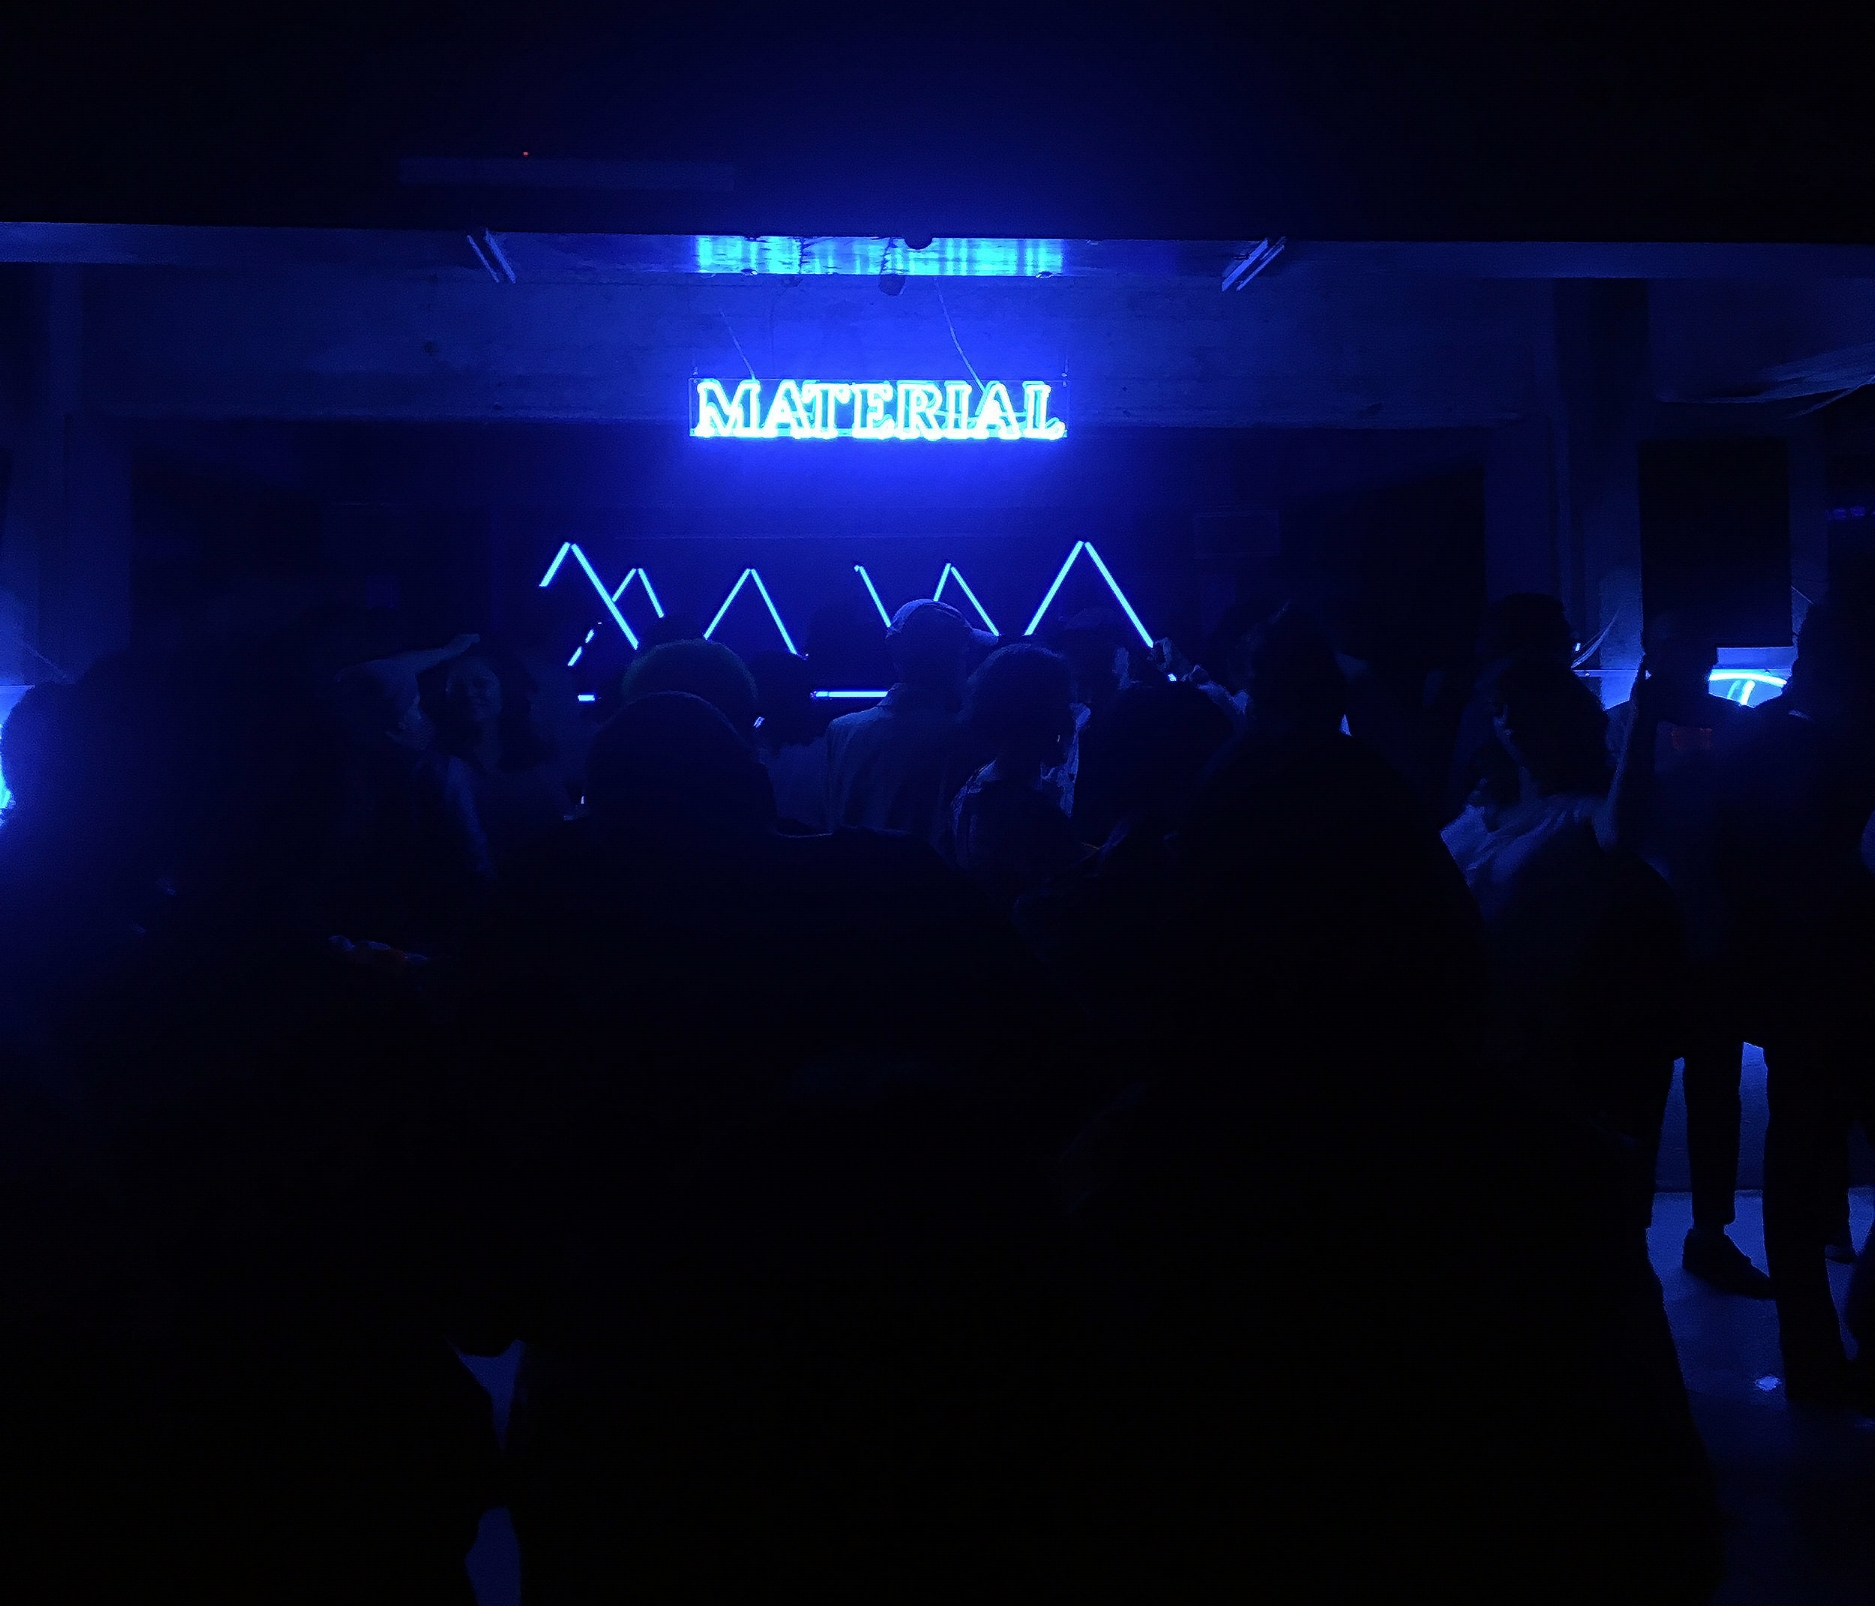 Material held a dance party at an underground (literally) concert hall called Foro Normandie.